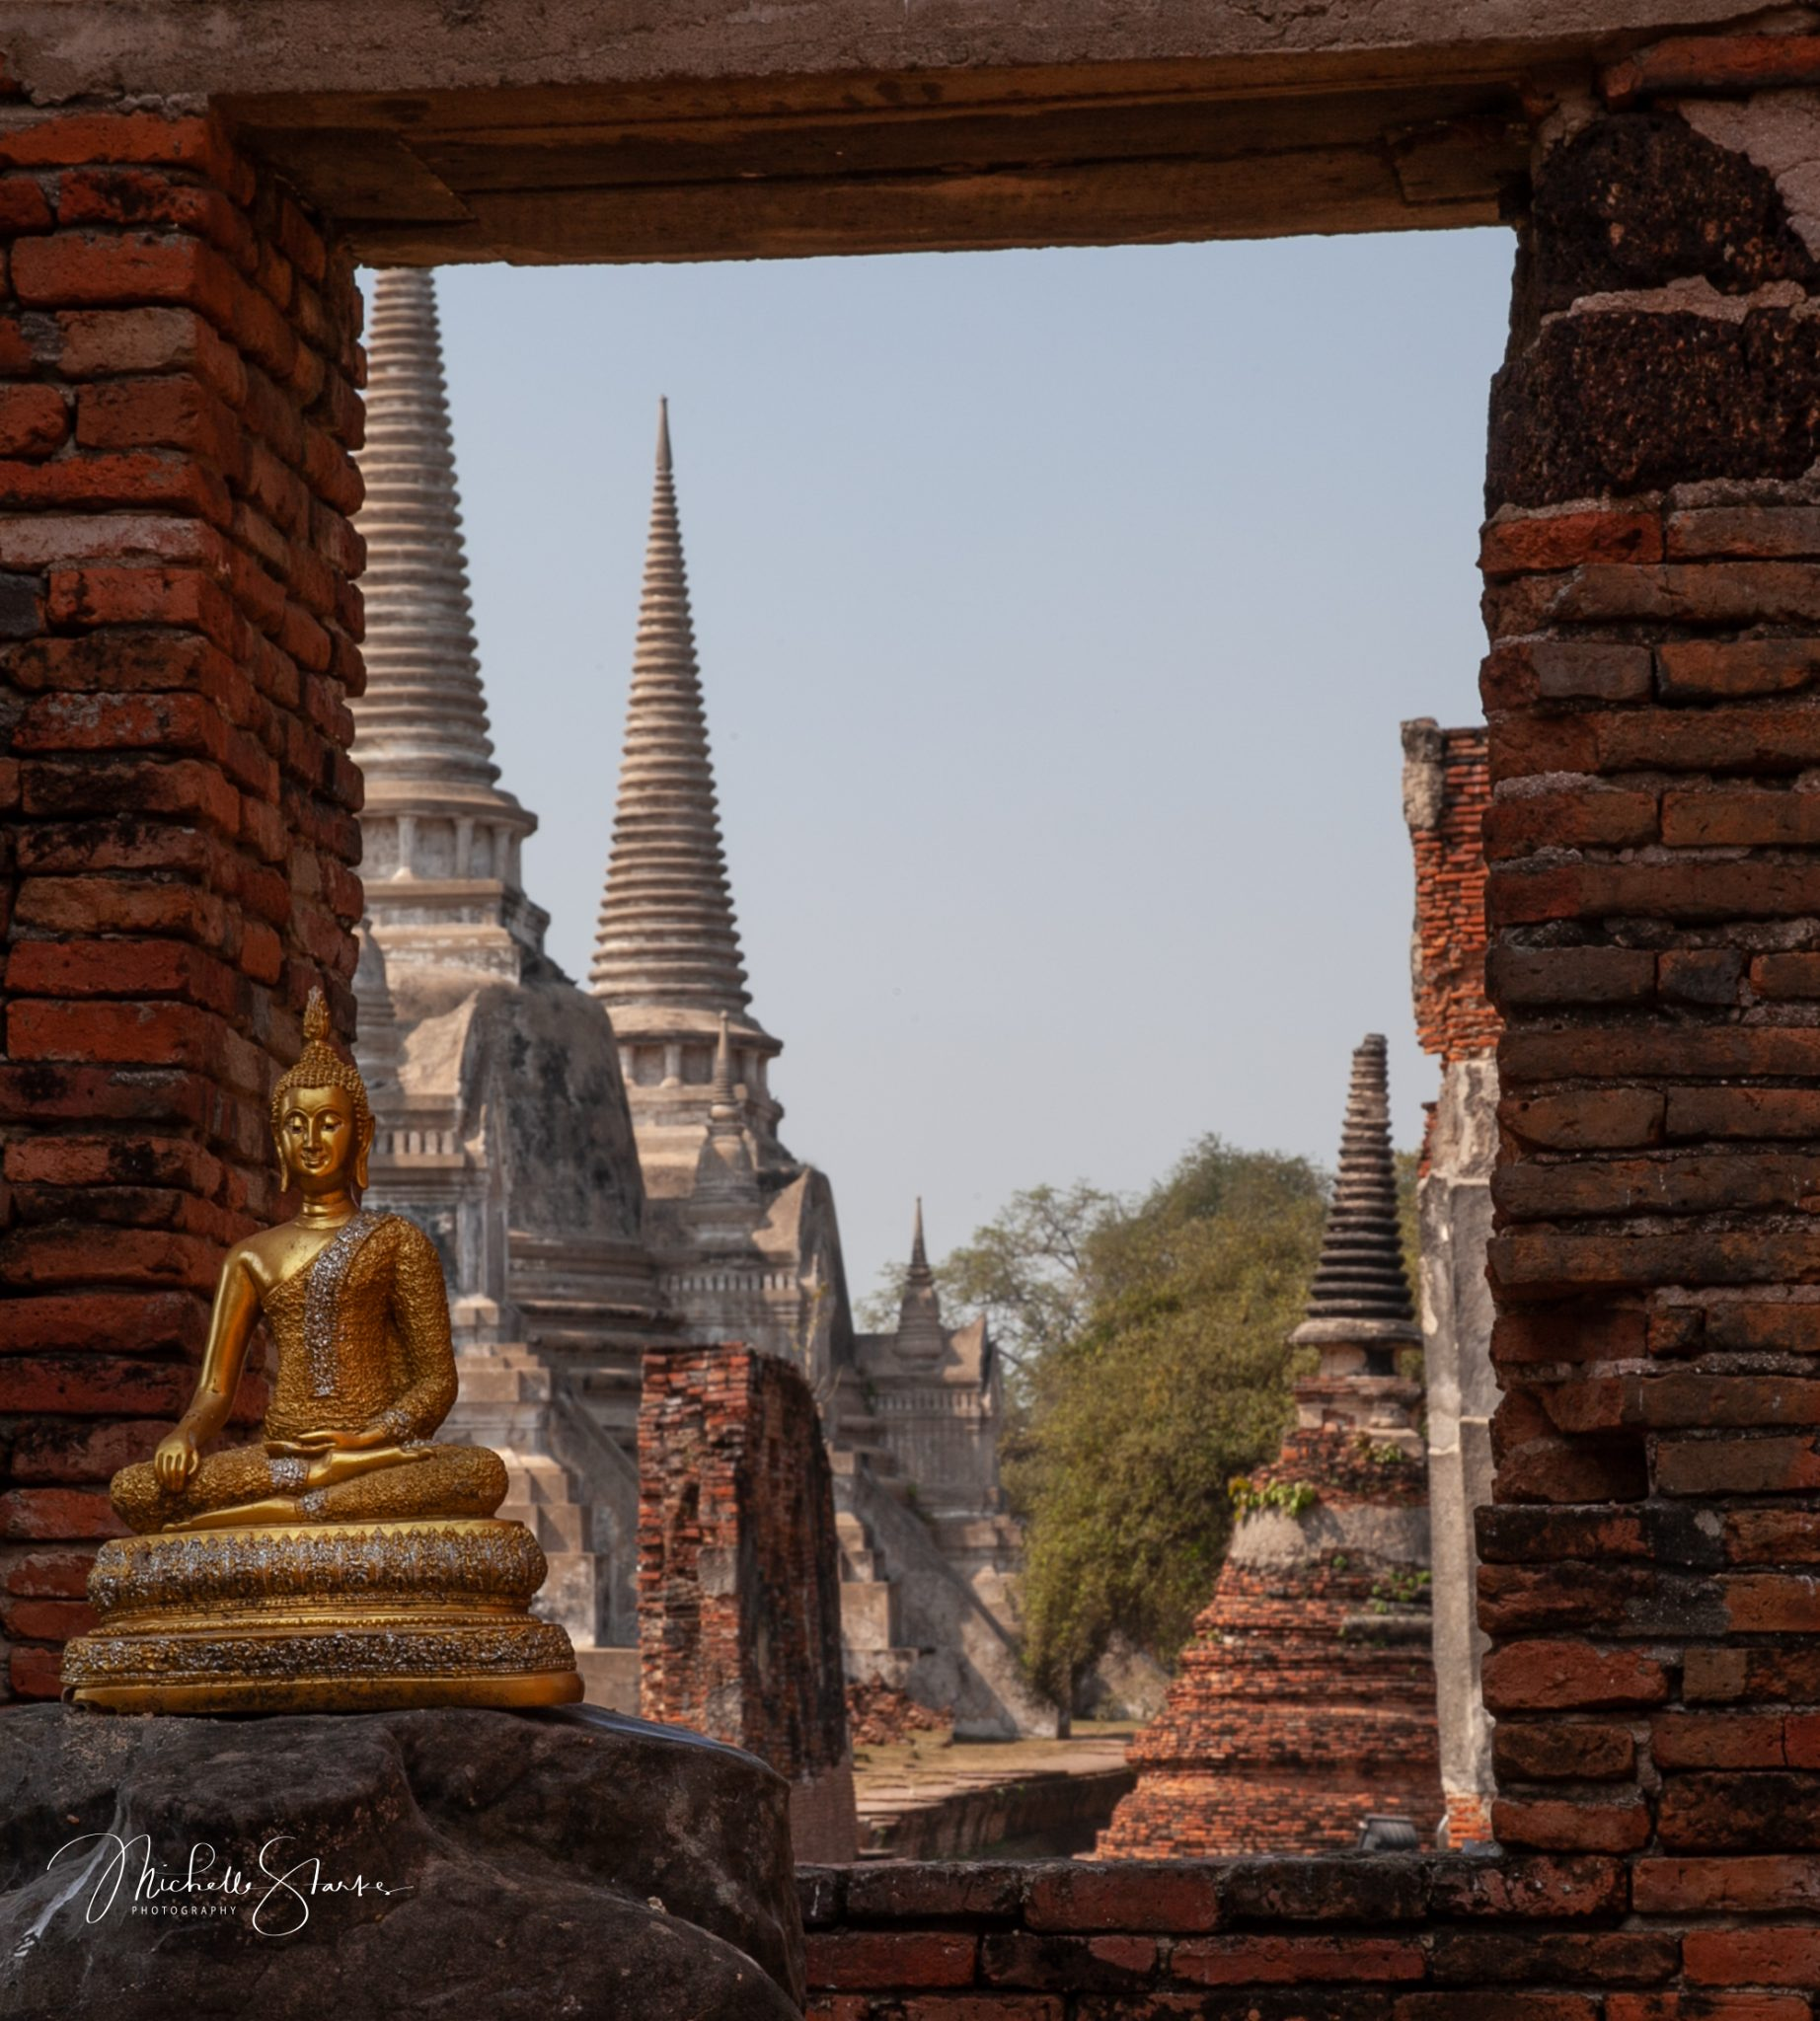 Ruins of a once great empire, Ayutthaya, Thailand